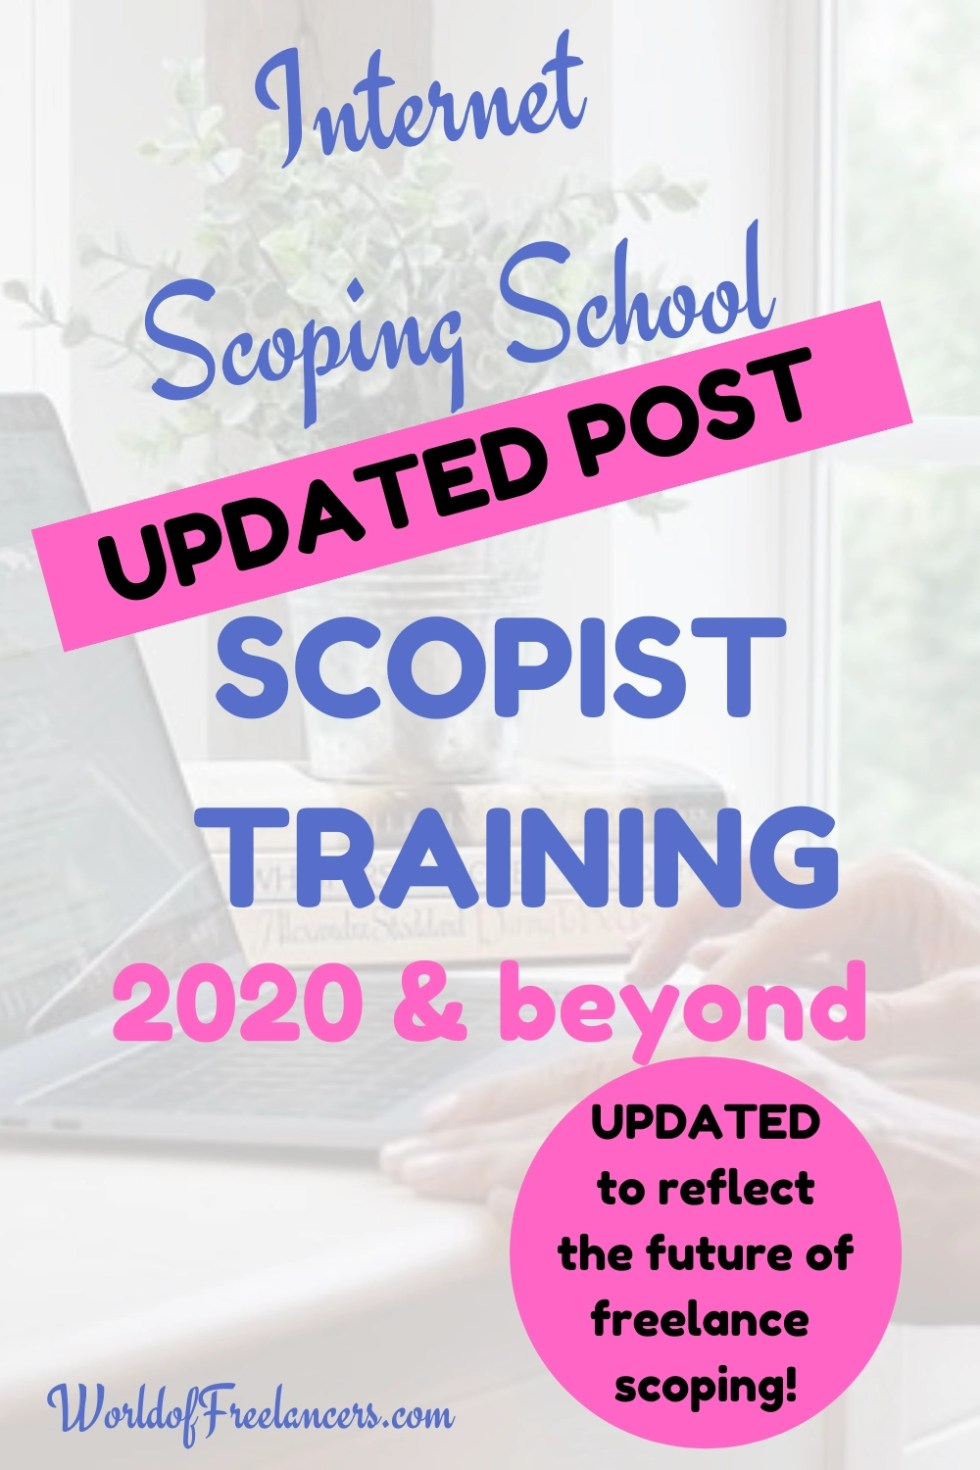 Pinterest image of woman's hands on laptop keyboard with text Internet Scoping School updated post scopist training 2020 and beyond